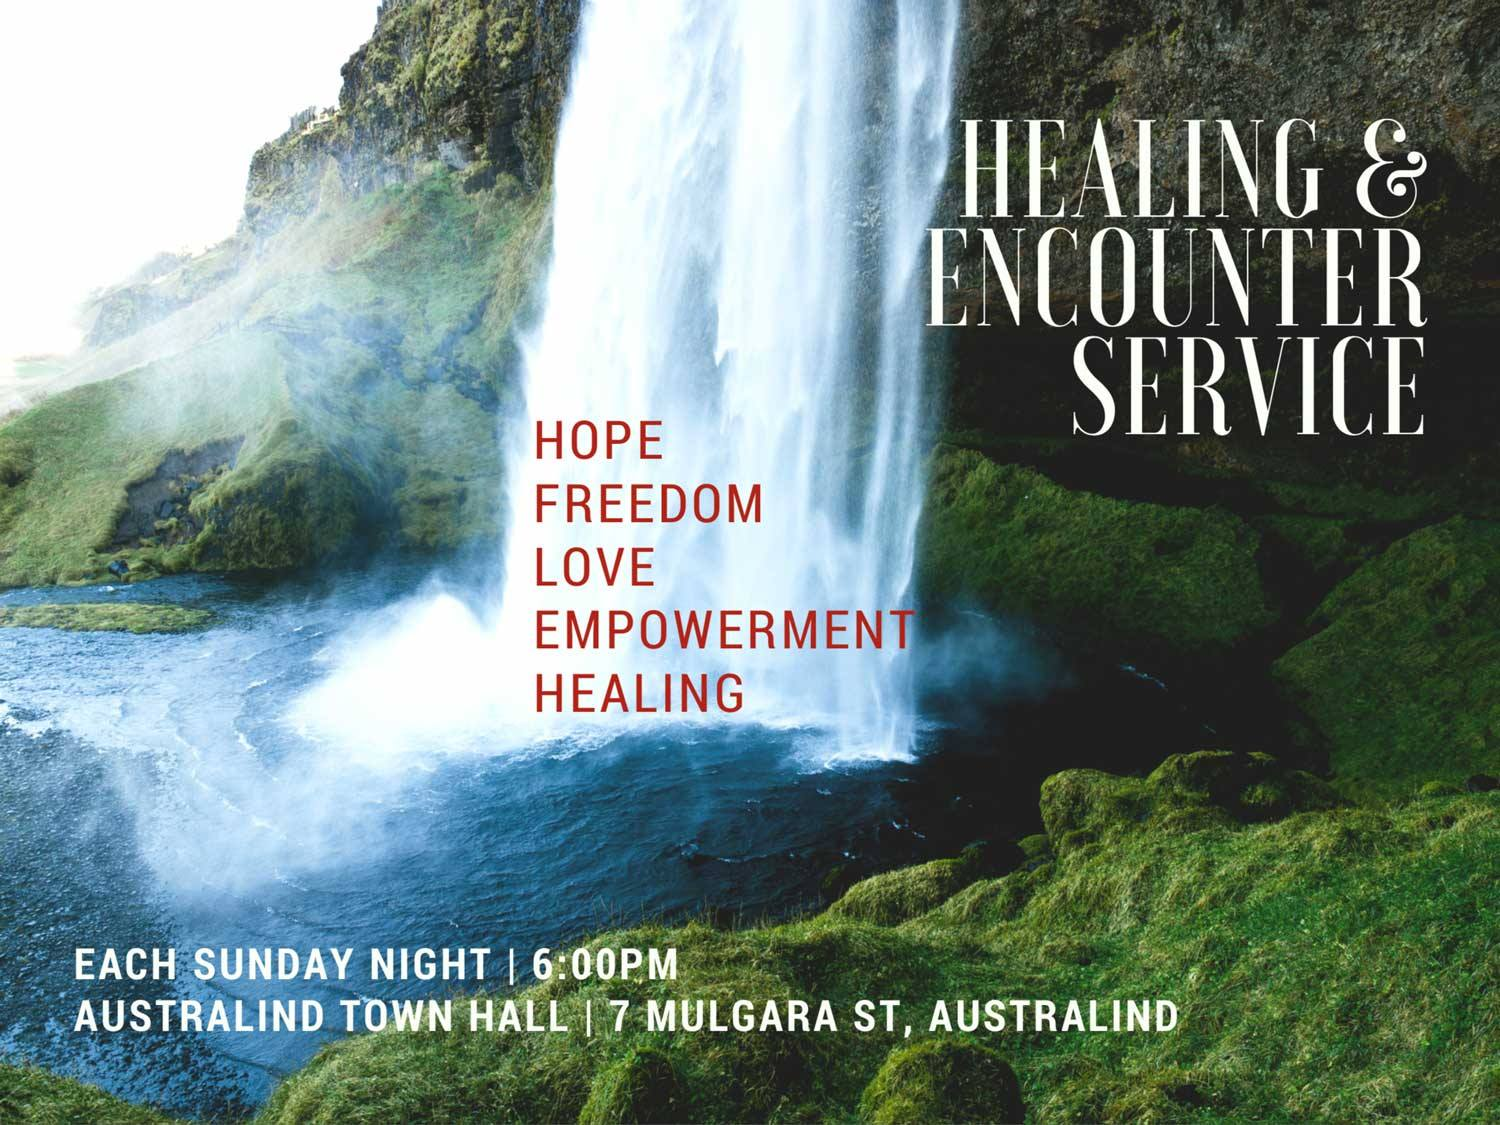 Australind healing and encounter night.jpg